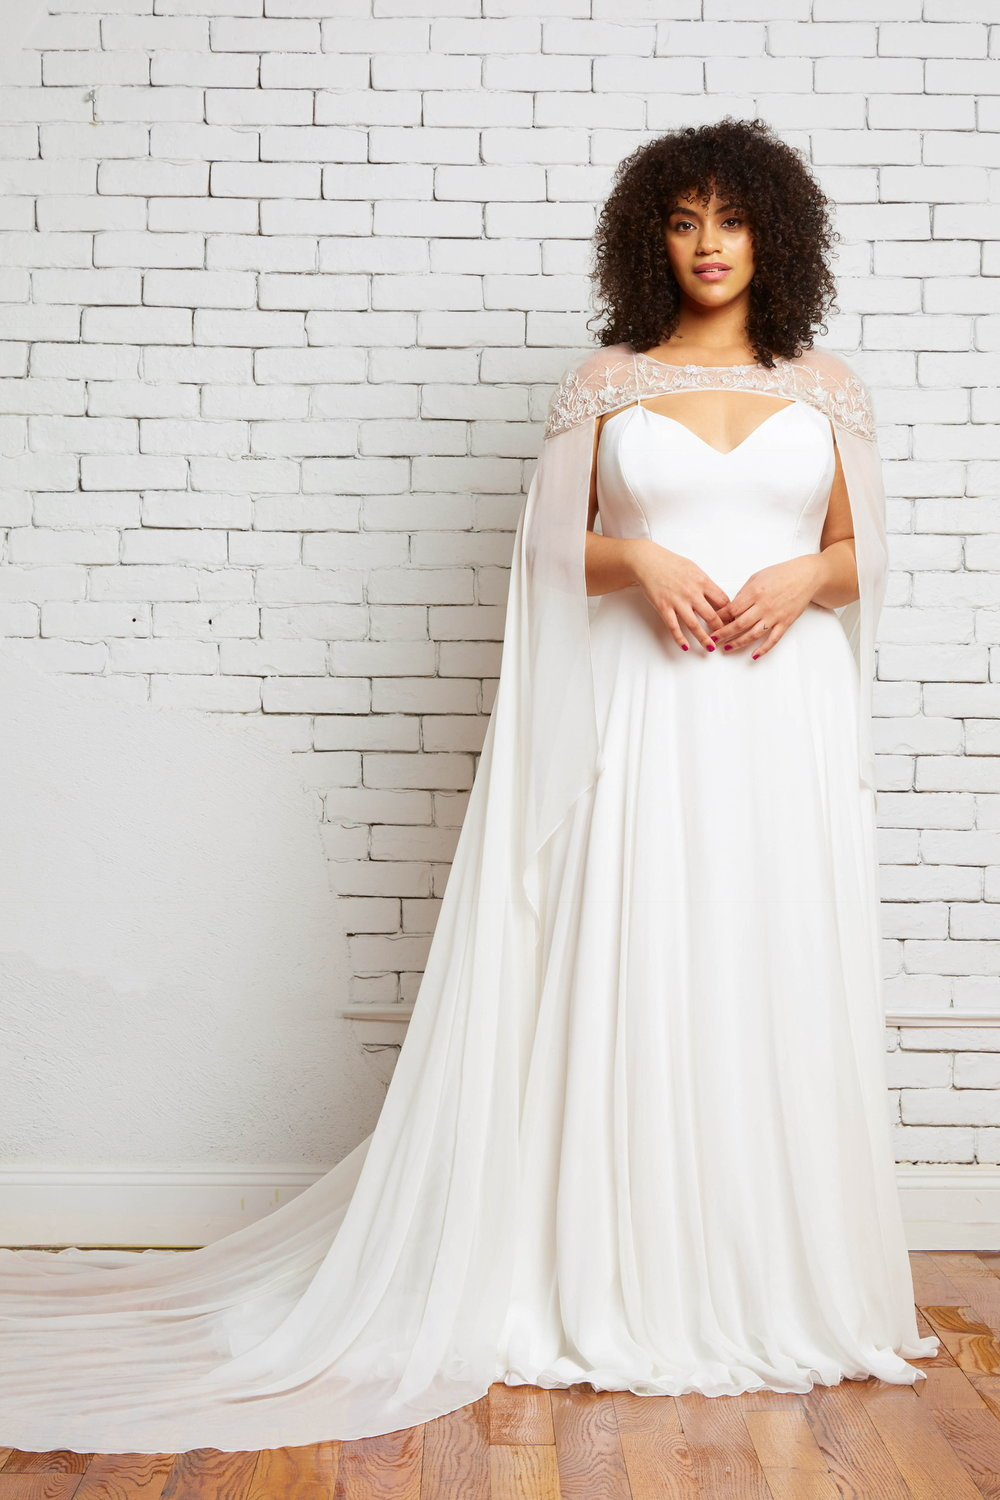 savannah-bridal-shop-ivory-and-beau-bridal-boutique-plus-size-trunk-show-plus-size-wedding-dresses-rebecca-schoneveld-trunk-show-9.jpeg